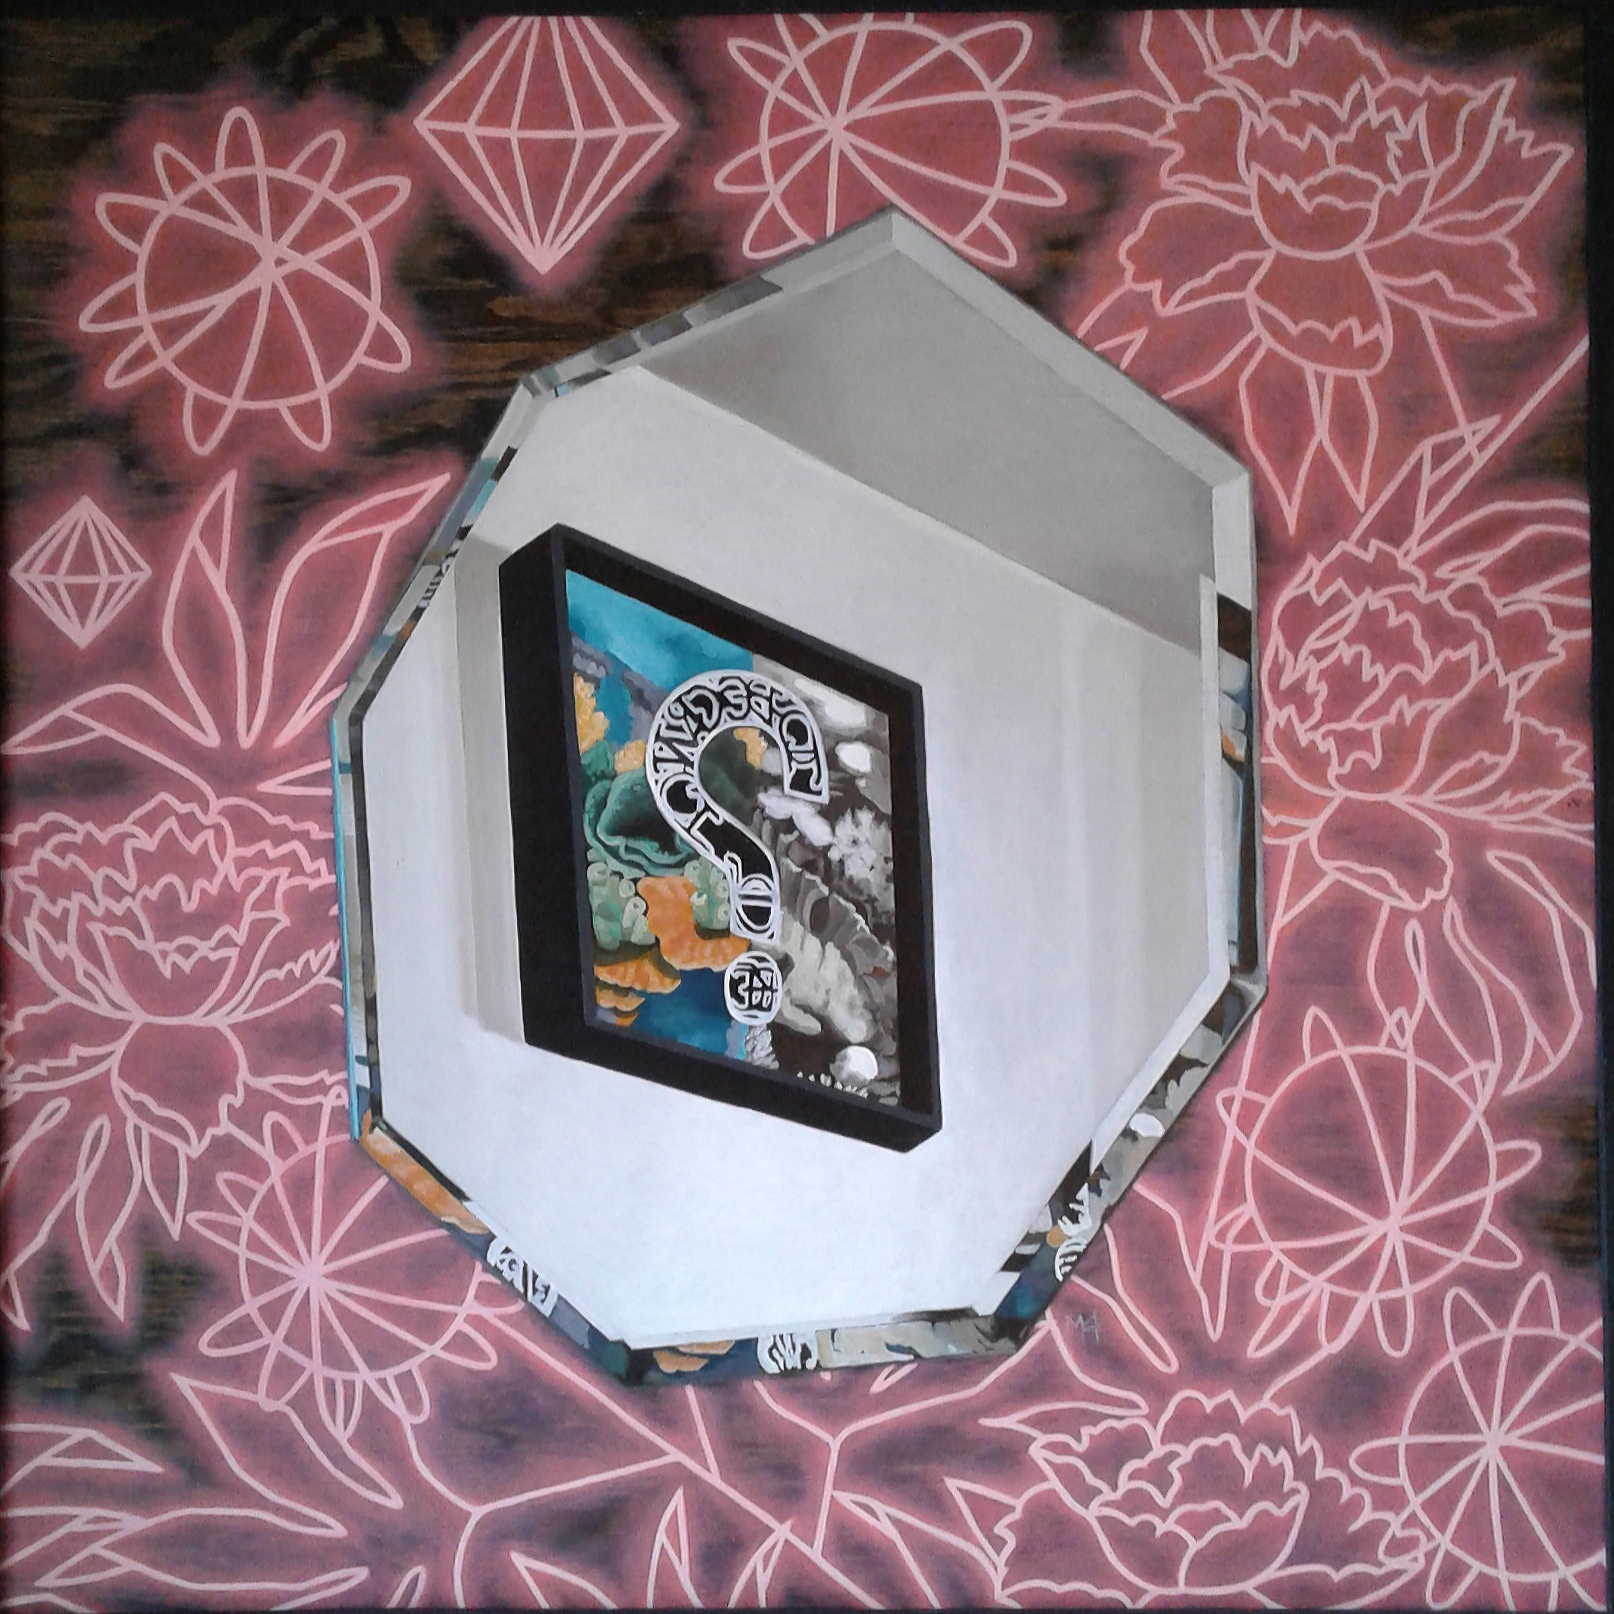 Meta World and Neon artwork by Molly Harris - art listed for sale on Artplode